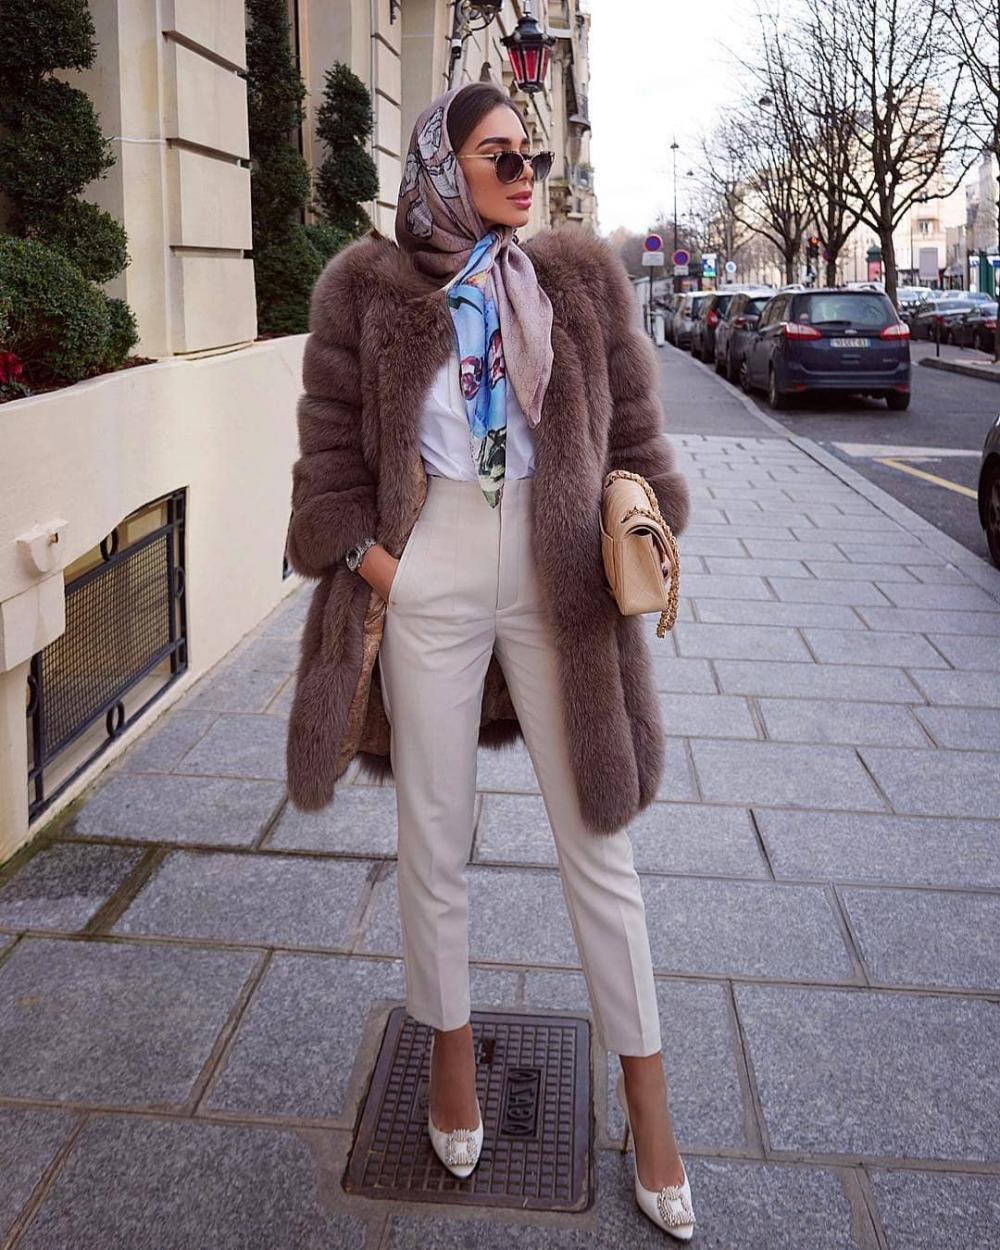 Elegant and stylish outfit for businesswoman